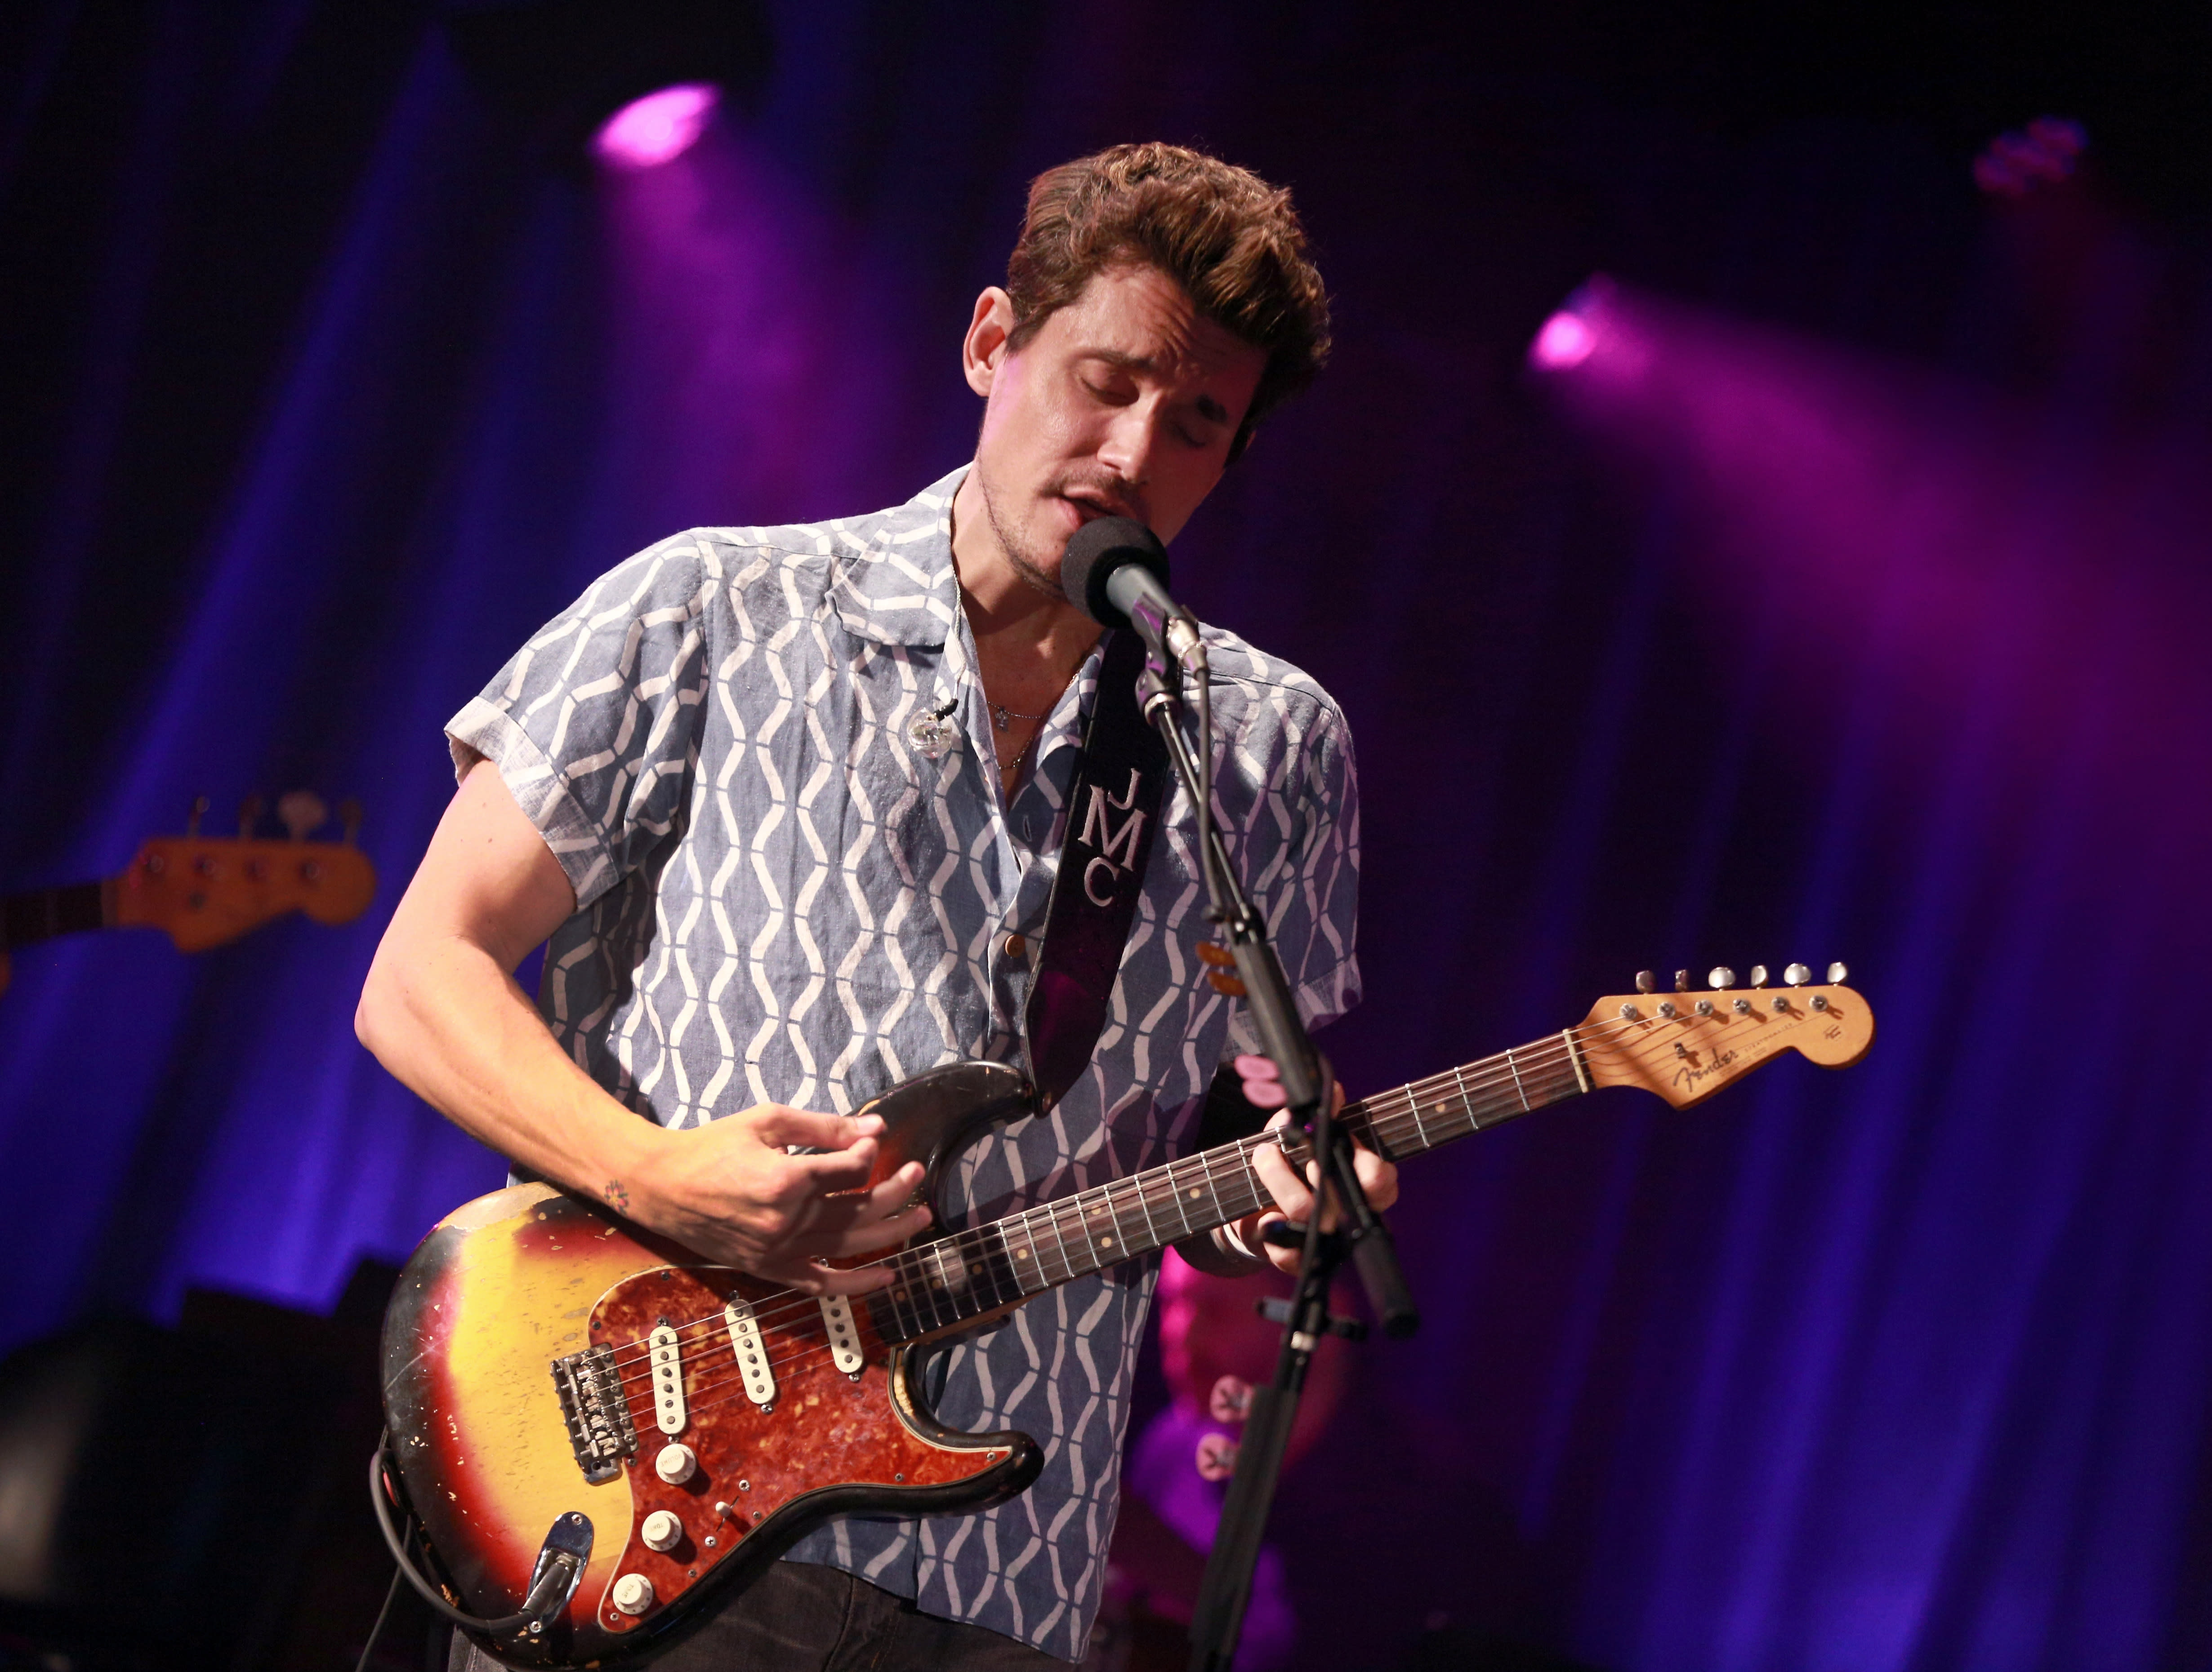 John Mayer in Visvim shirt